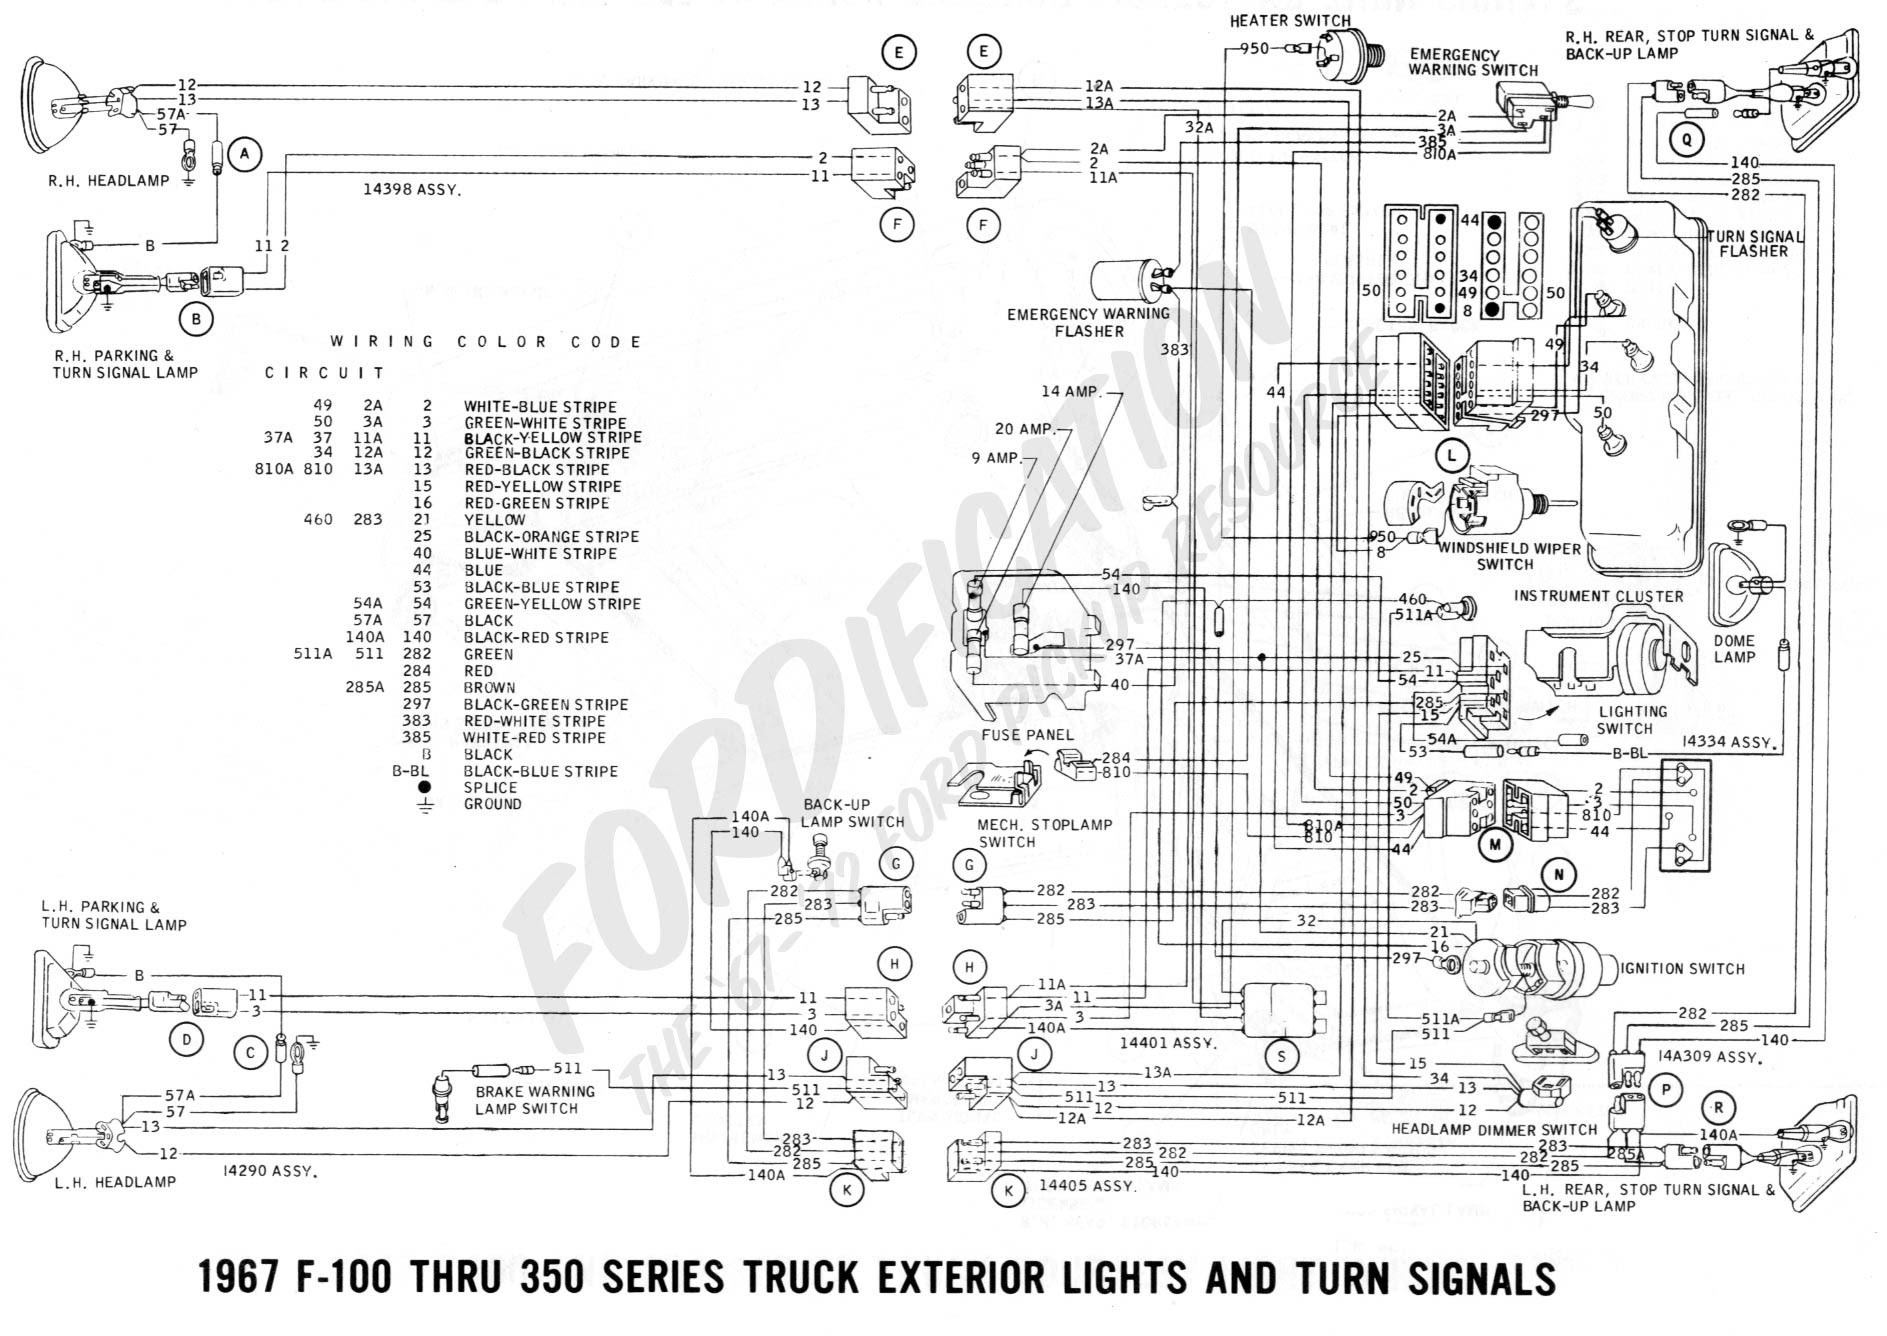 1970 Ford Mustang Fuse Block Diagram Wiring Schematic Rj45 Socket Wiring Diagrams Bege Wiring Diagram